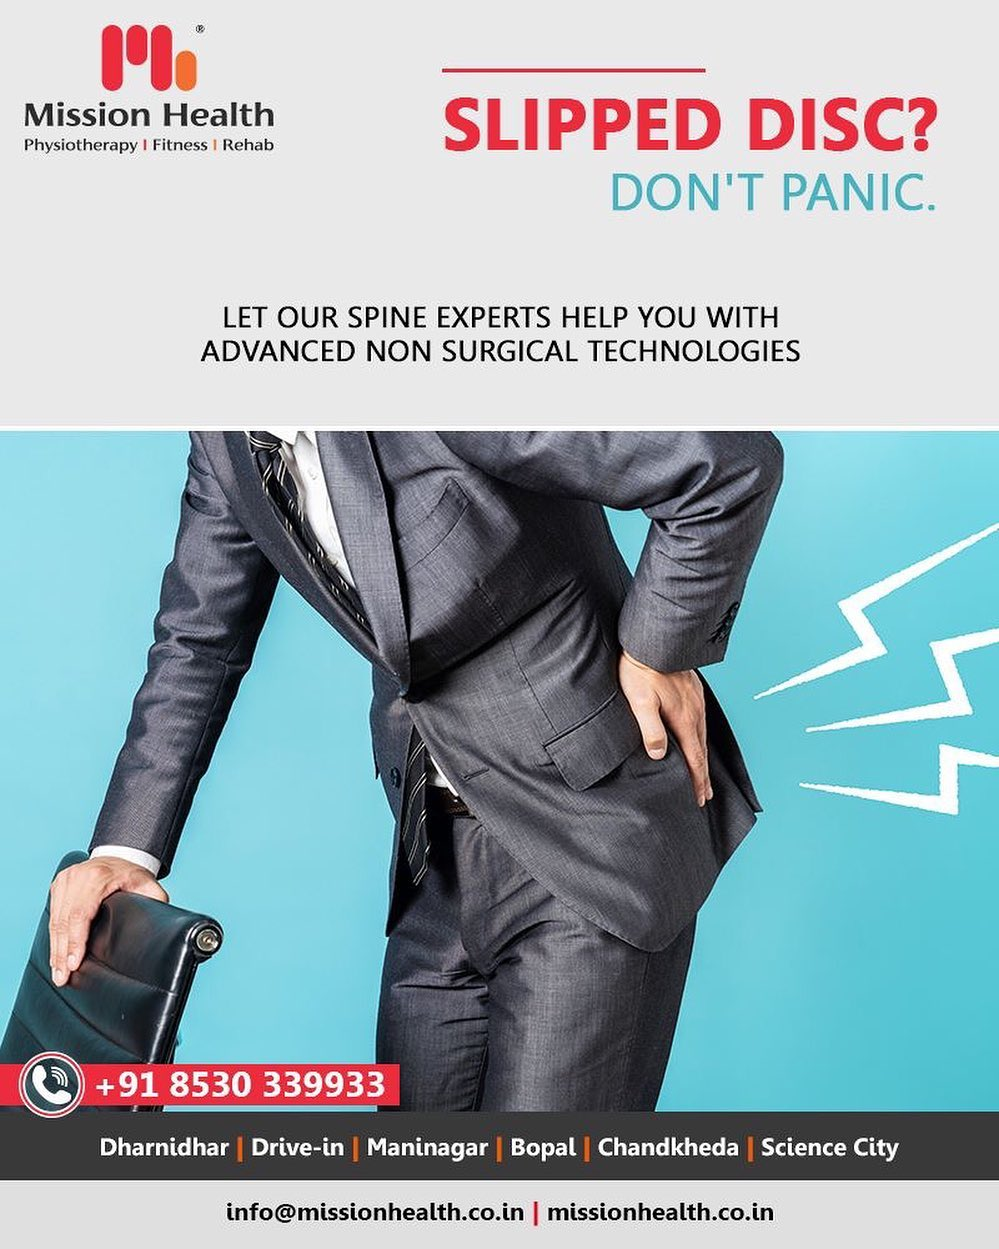 Trust us when it comes to your spine concerns! We shall help you with the most advanced non-surgical technologies!  #MissionHealth #MissionHealthIndia #AbilityClinic #MovementIsLife #SpineClinic #SlippedDisc